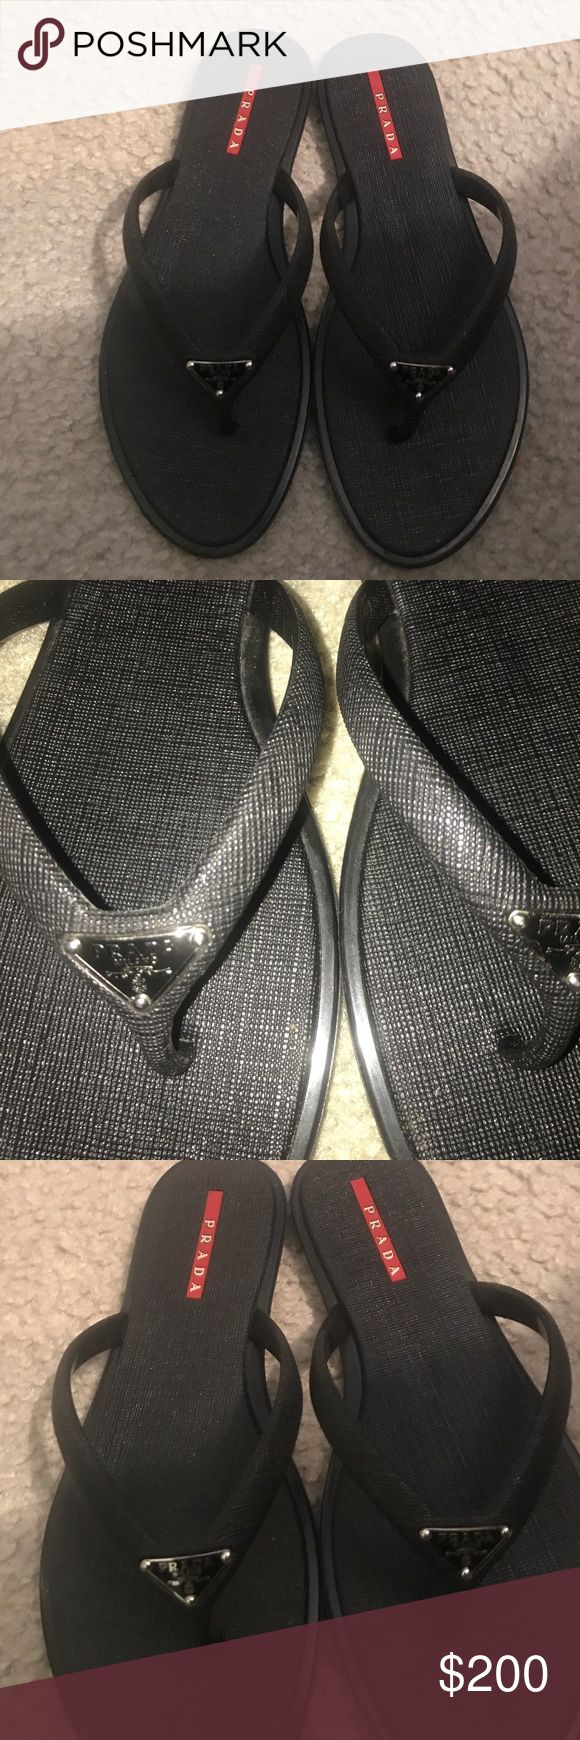 Prada Black Prada flip flop no sign of wear Prada Shoes Sandals